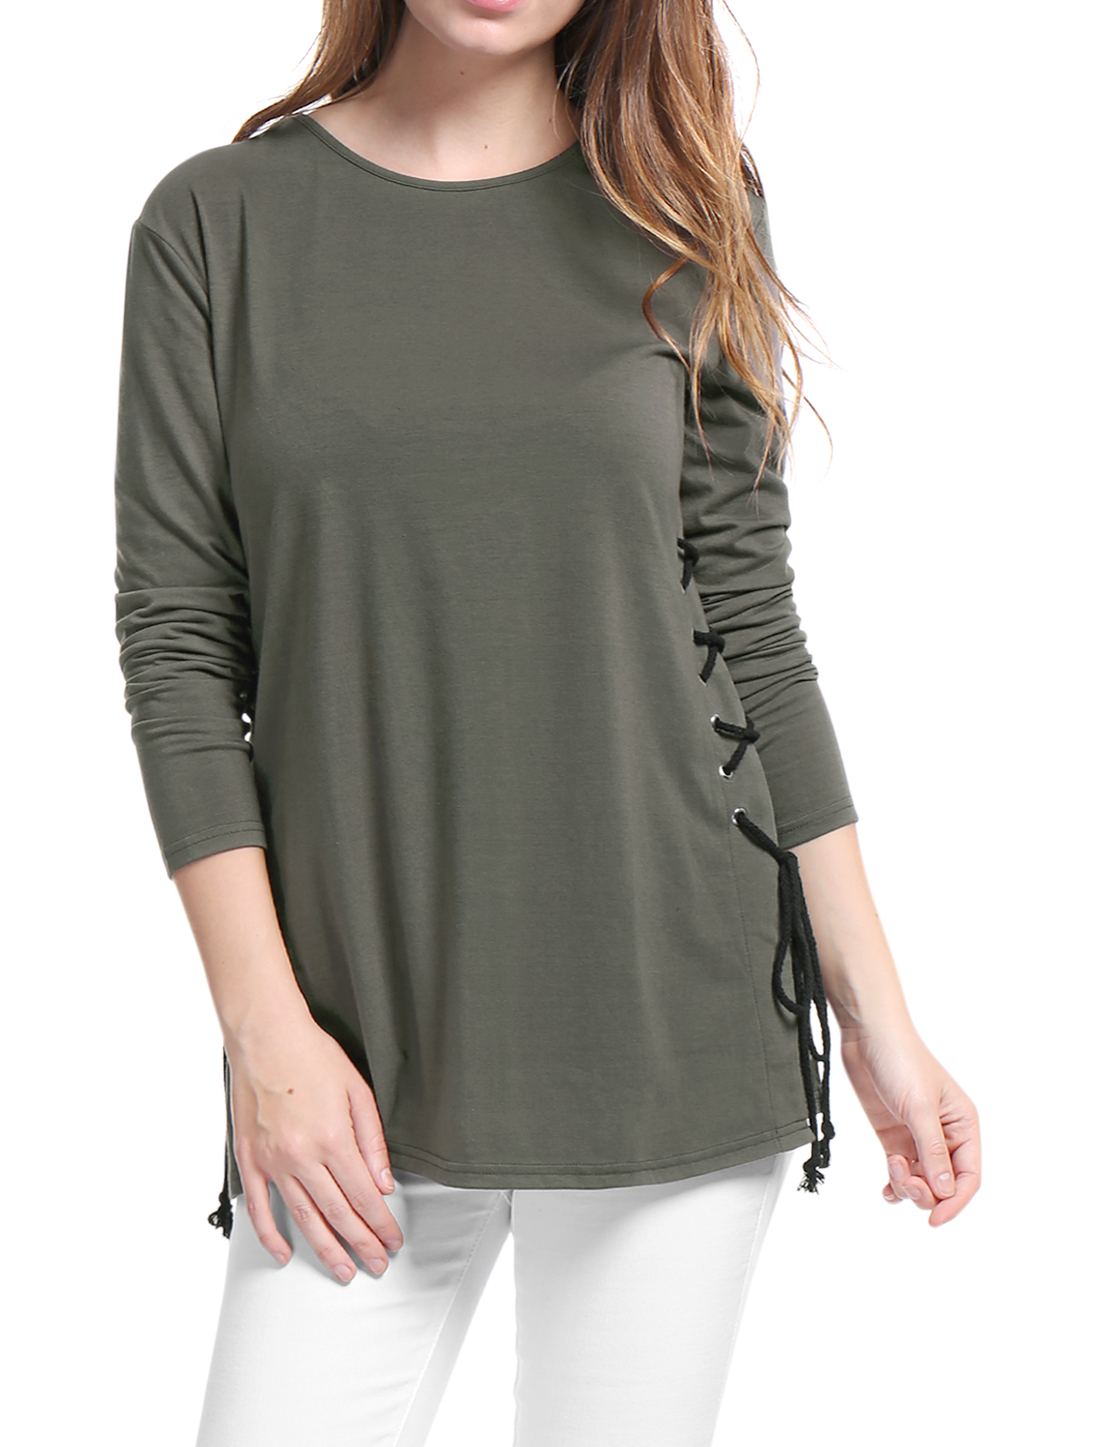 Women Lace Up Sides Long Sleeves Crew Neck Blouse Gray M